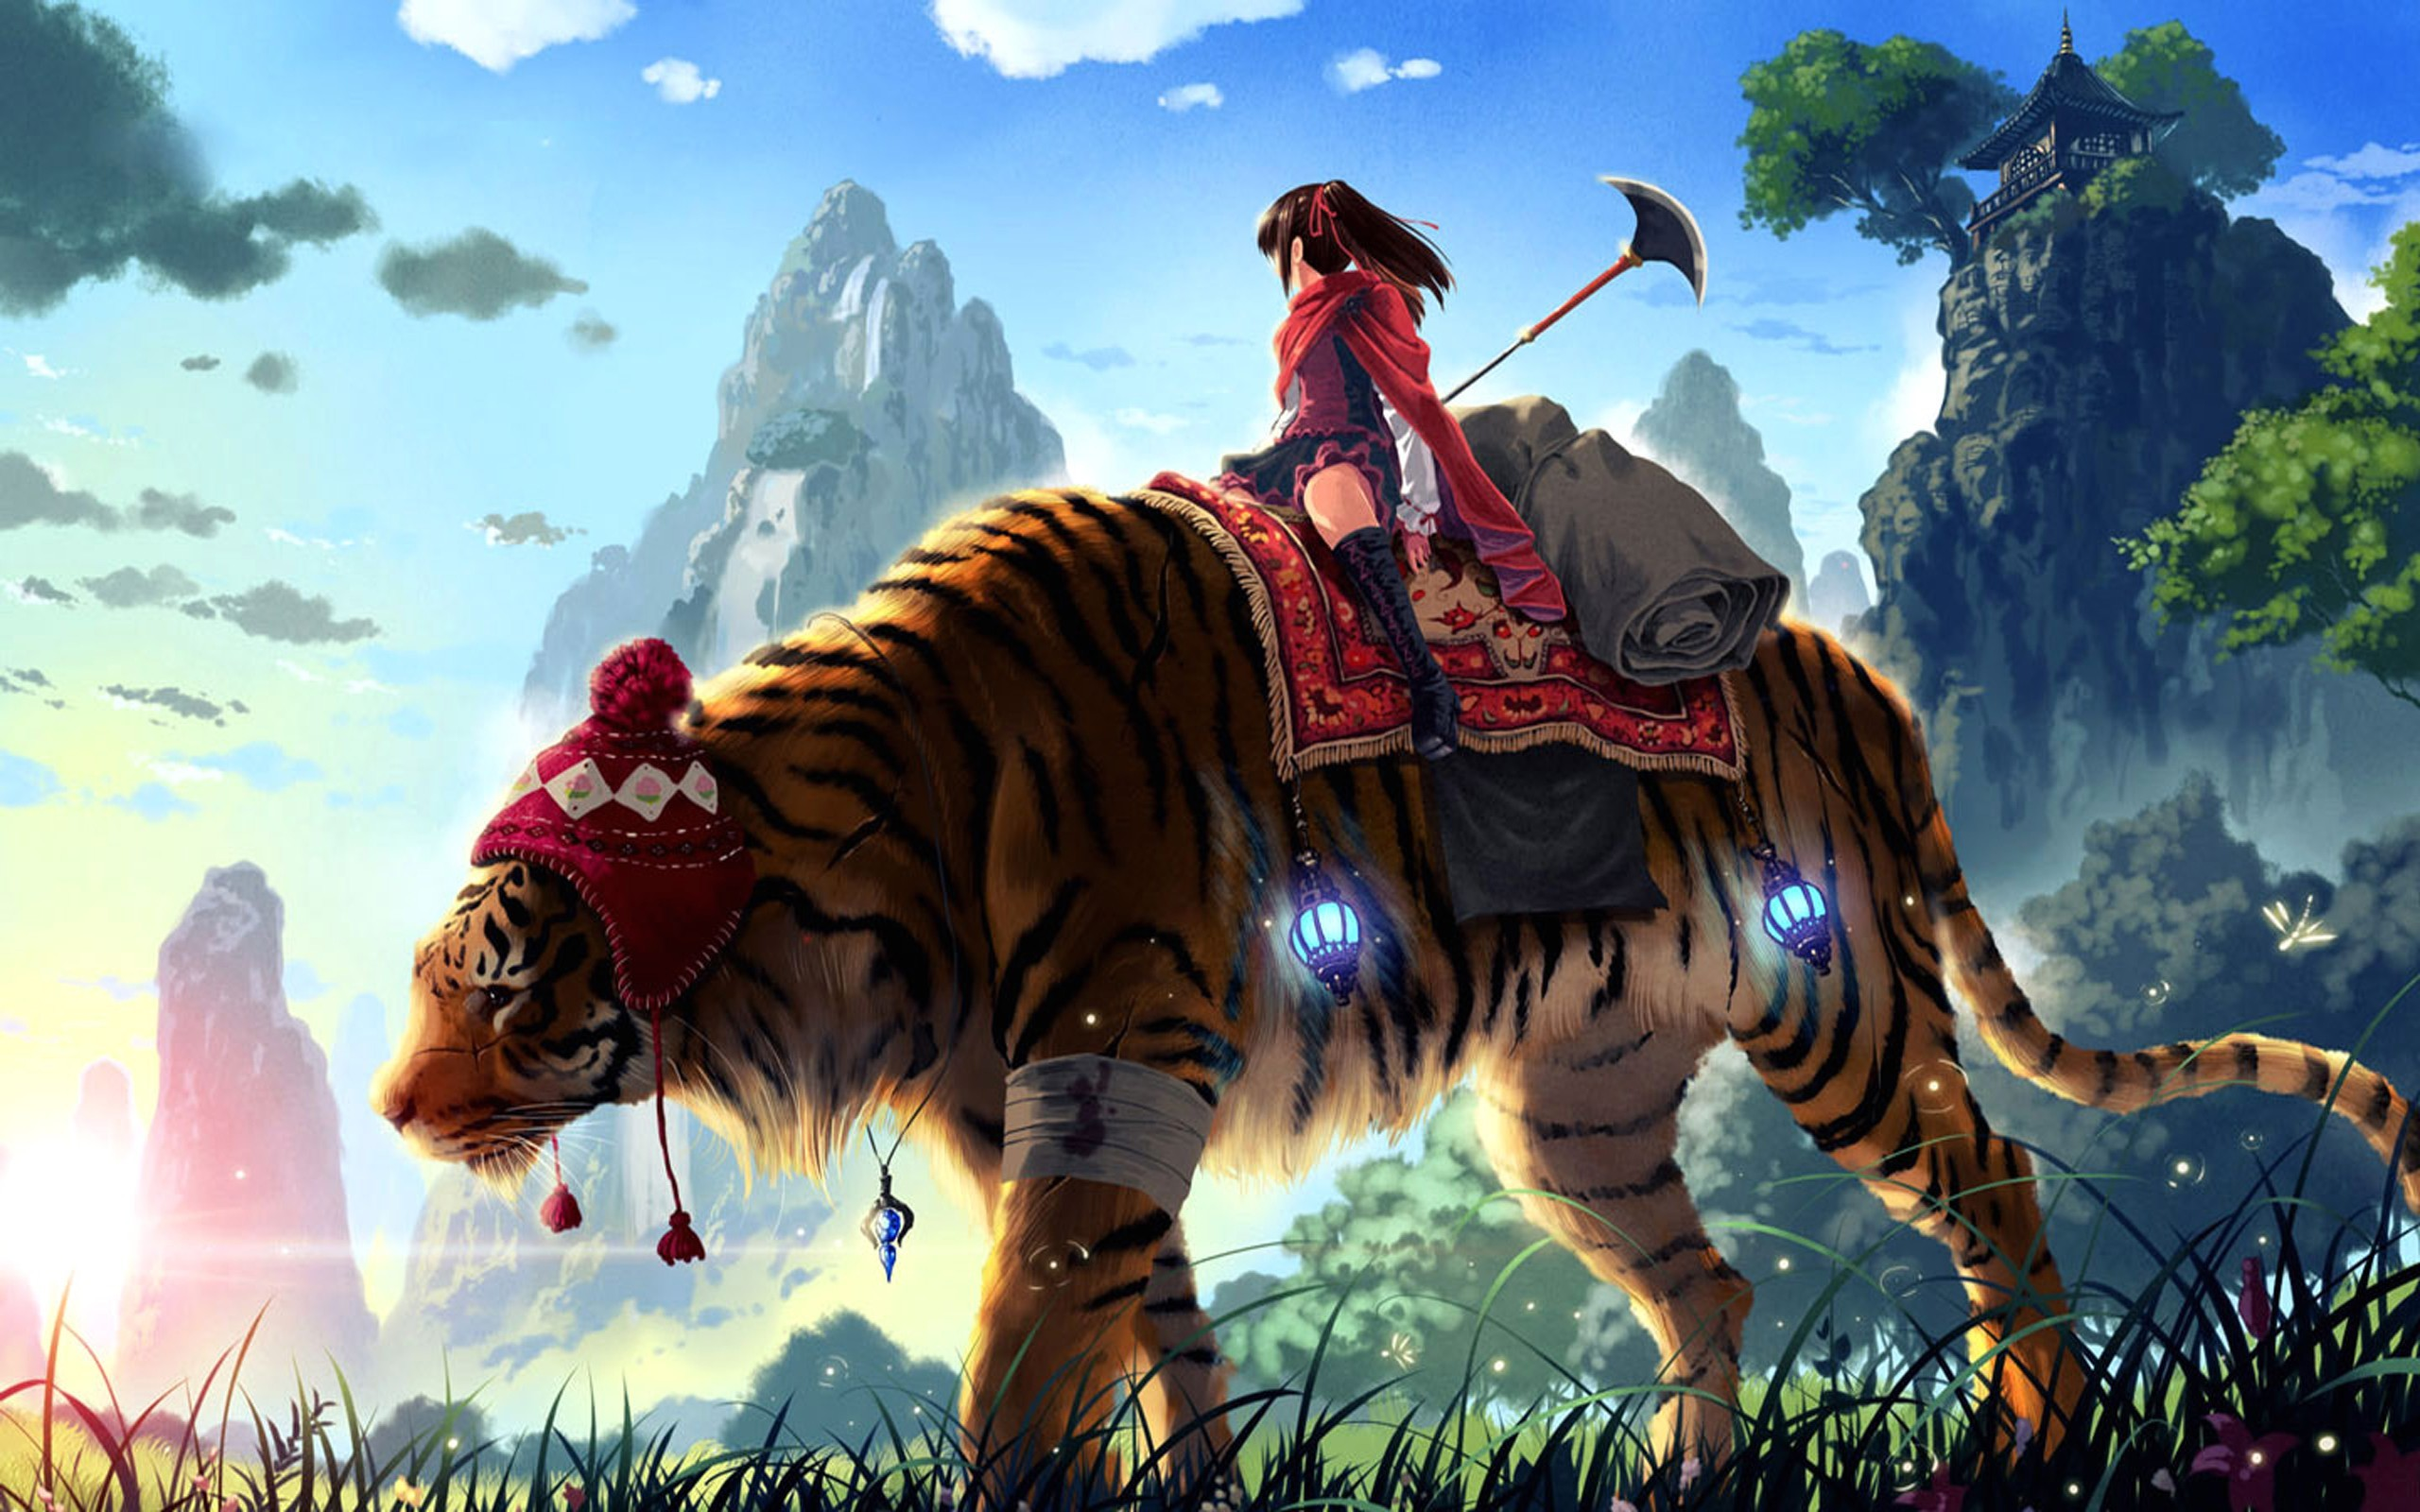 2560x1440 D Animated Tiger Wallpapers Wallpaper HD K 2560A 1440